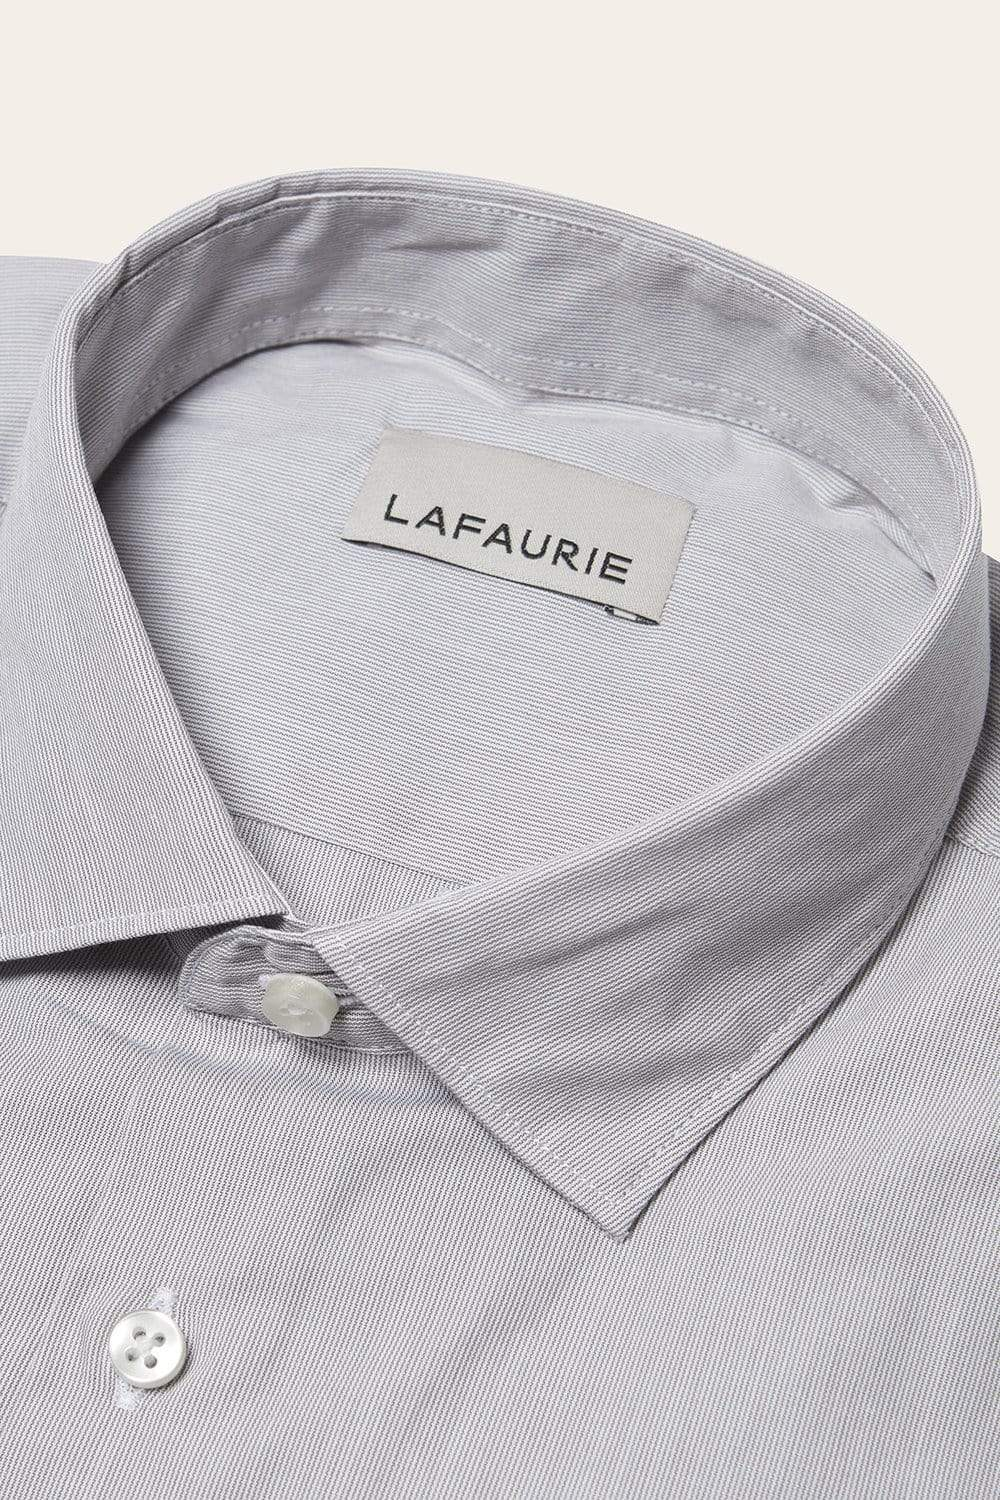 Chemise Texte - Blanc Taupe